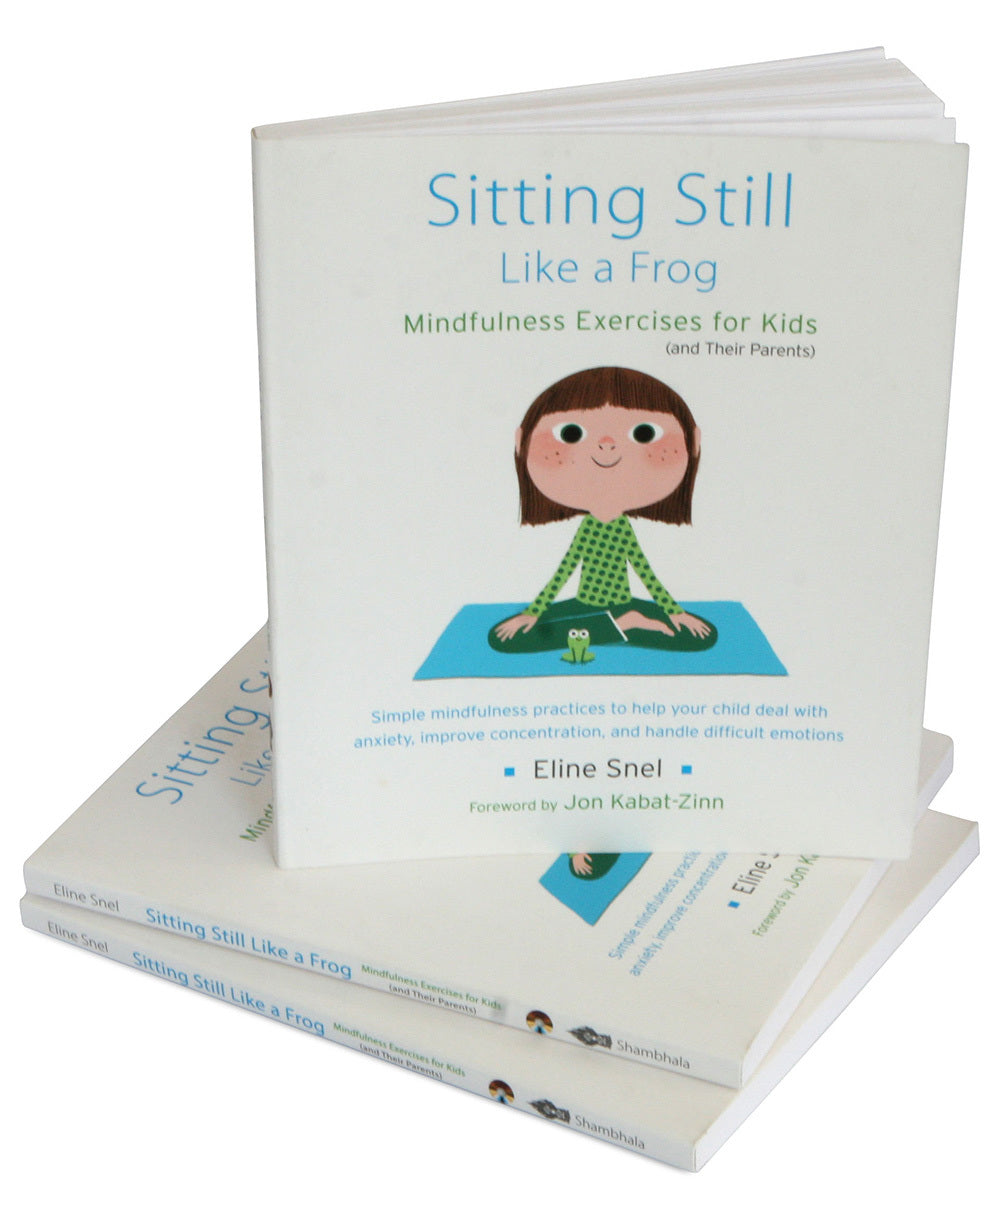 Sitting Still Like a Frog (Book and CD by Eline Snel)